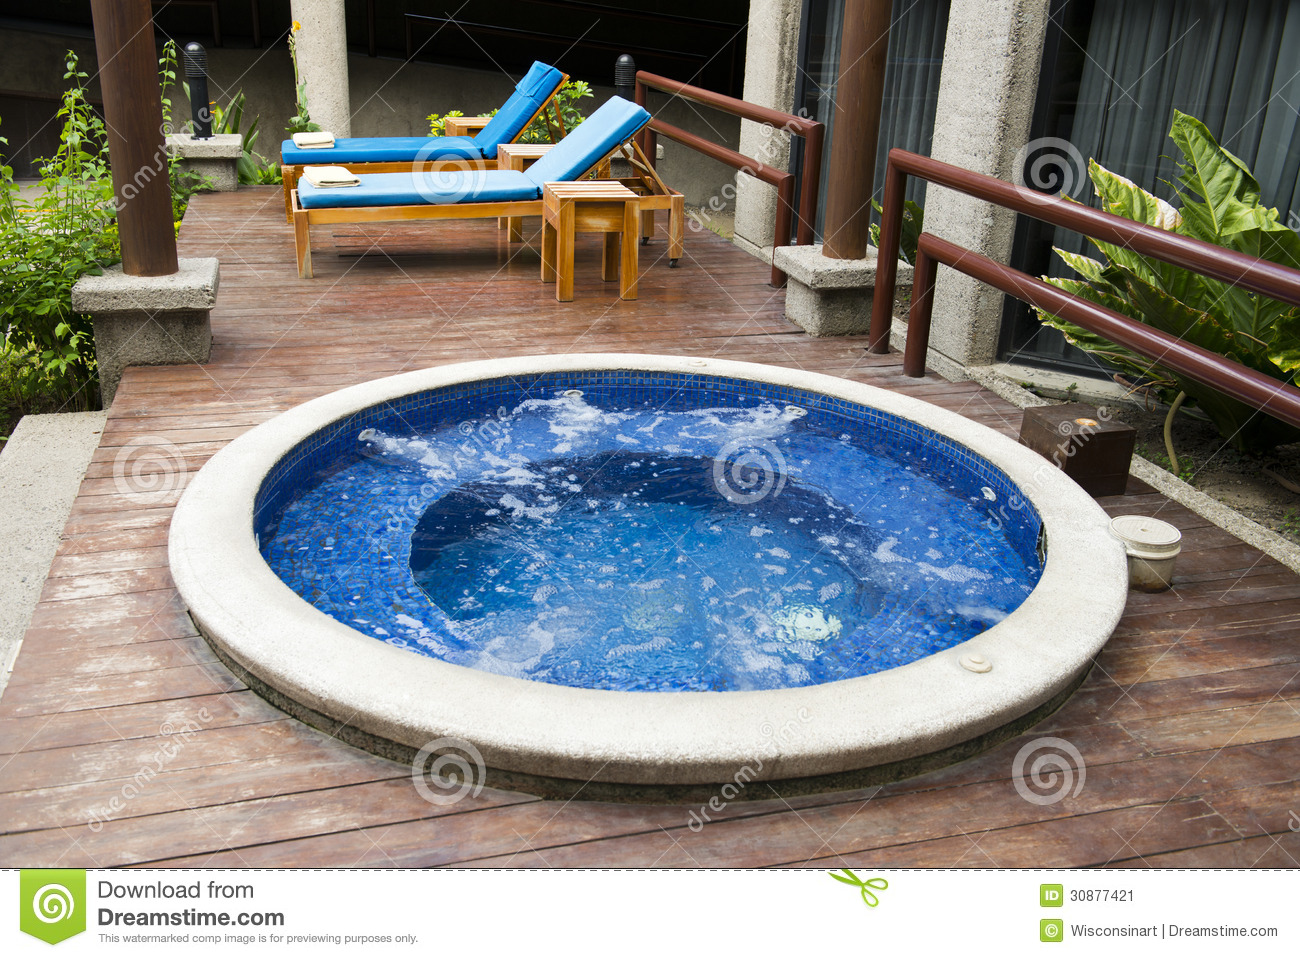 Luxury Hotel Resort And Hot Tub Water Spa Stock Image - Image of ...